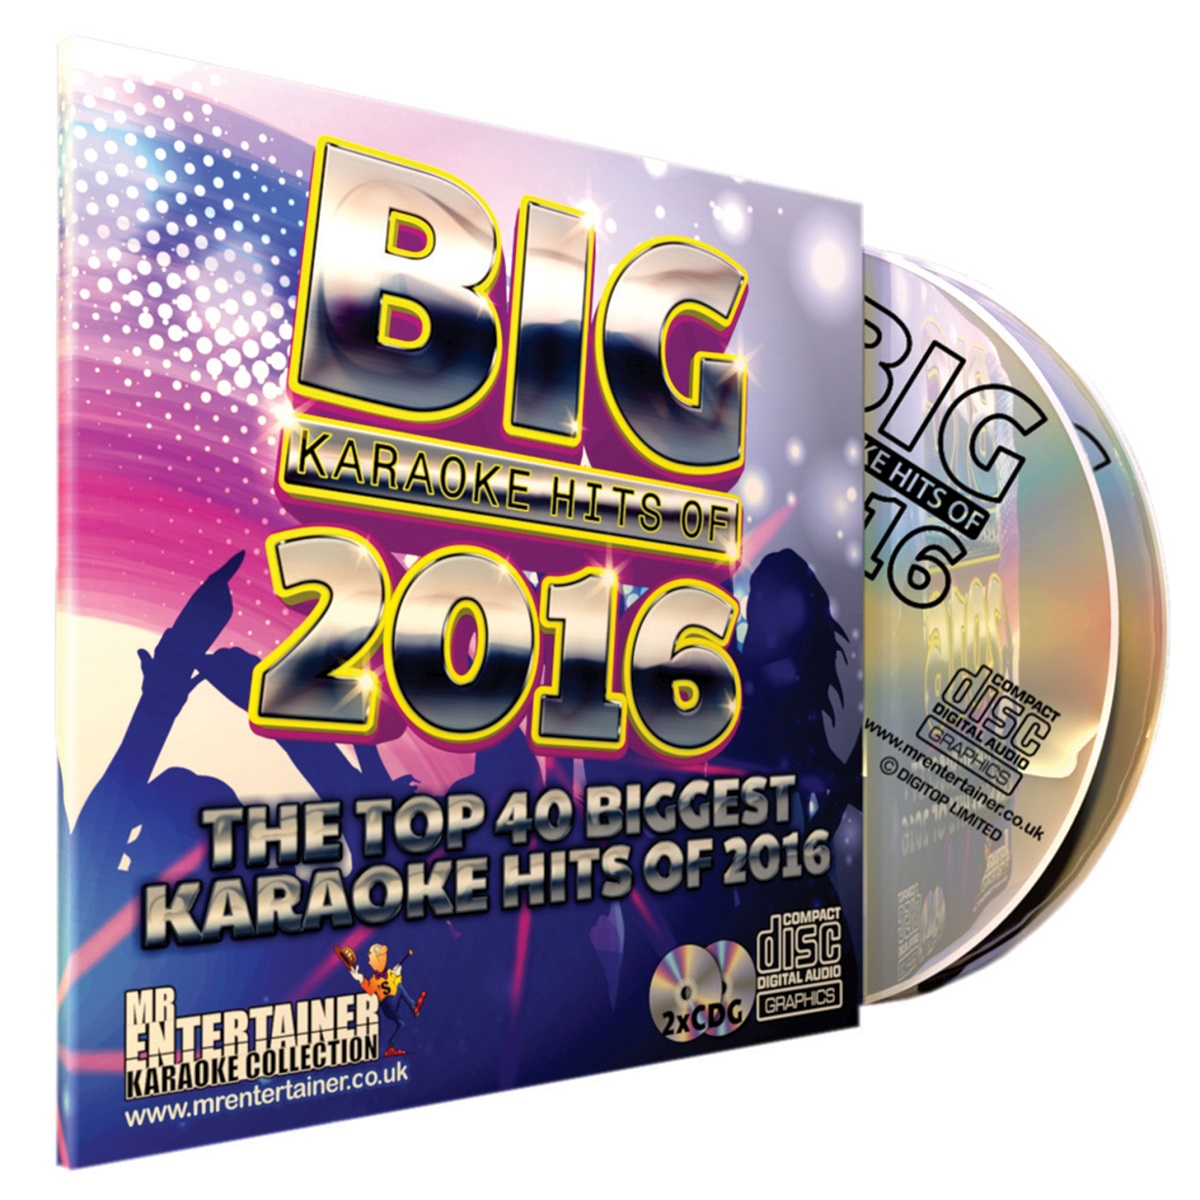 Mr Entertainer Big Karaoke Hits Of 2018-2 X Cd+g Disc Package 40 Songs cdg